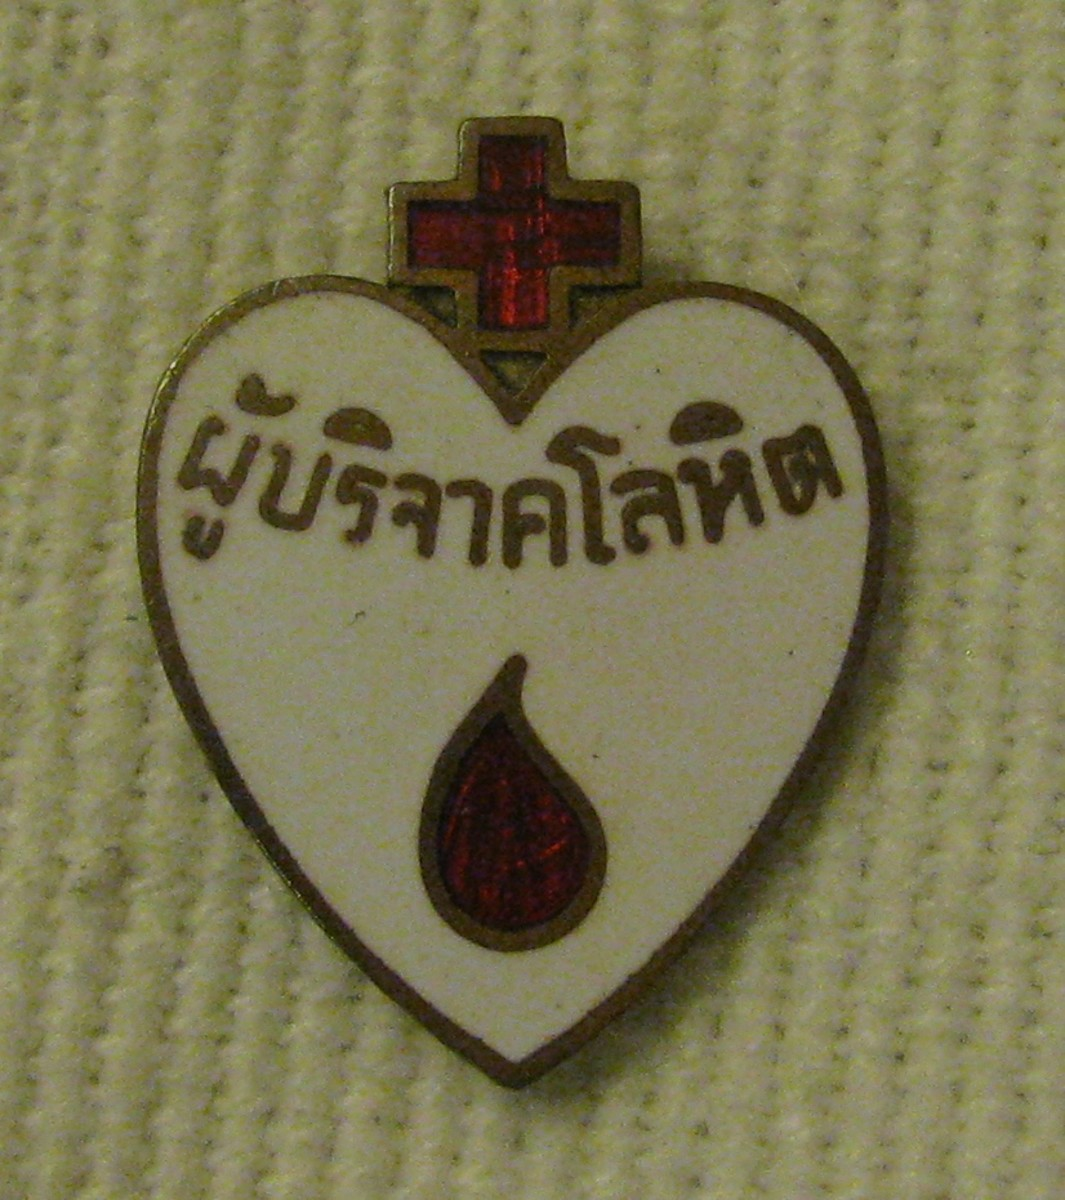 Thai blood donor's badge